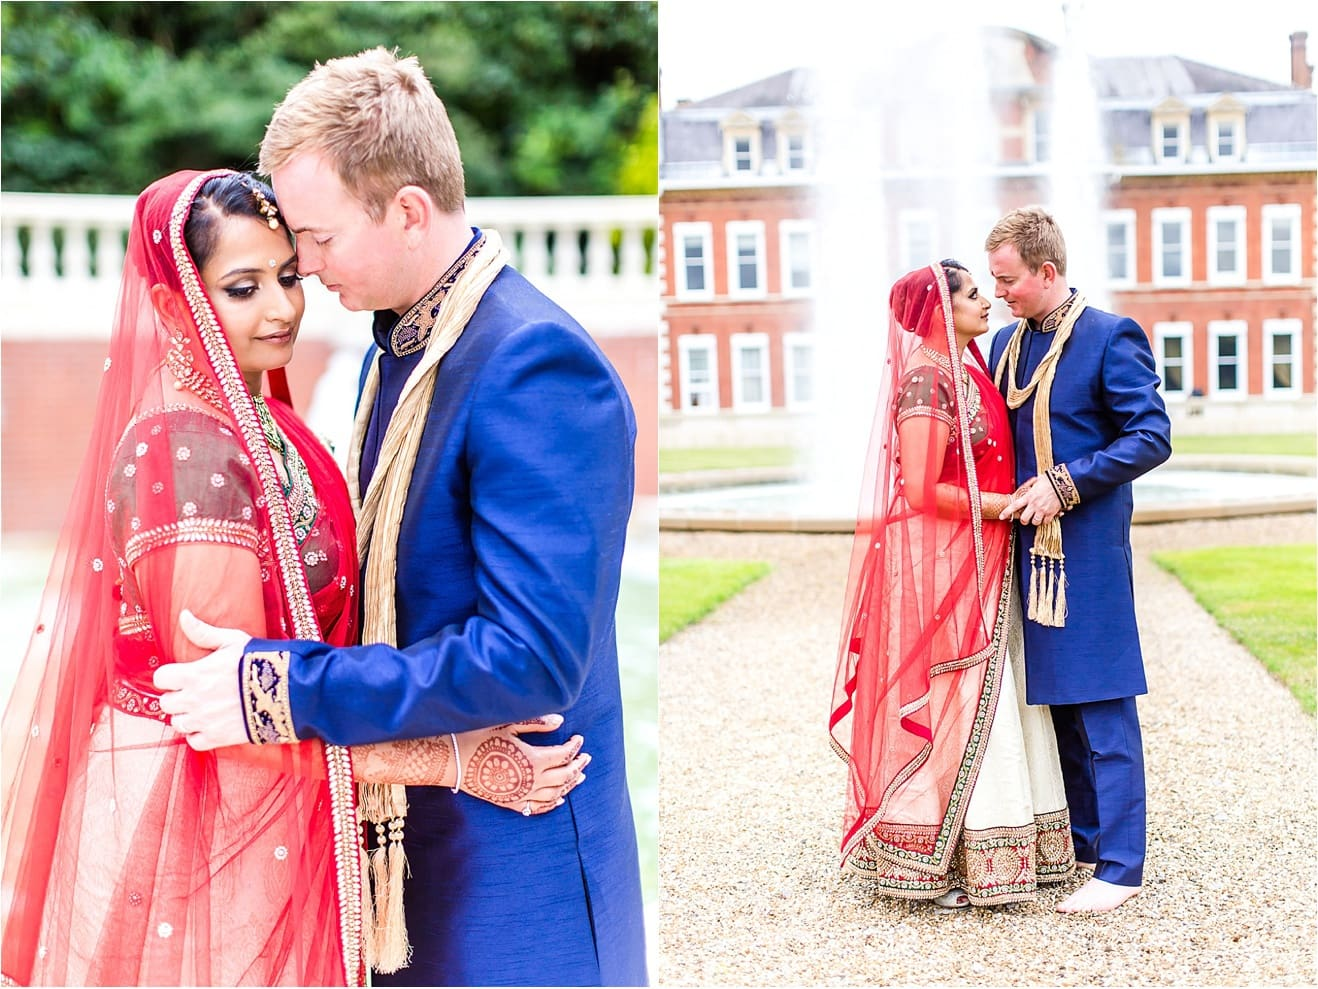 FETCHAM-PARK-SURREY-SWAN-GLOBE-LONDON-WEDDING-PHOTOGRAPHY-EDDIE-JUDD_0013